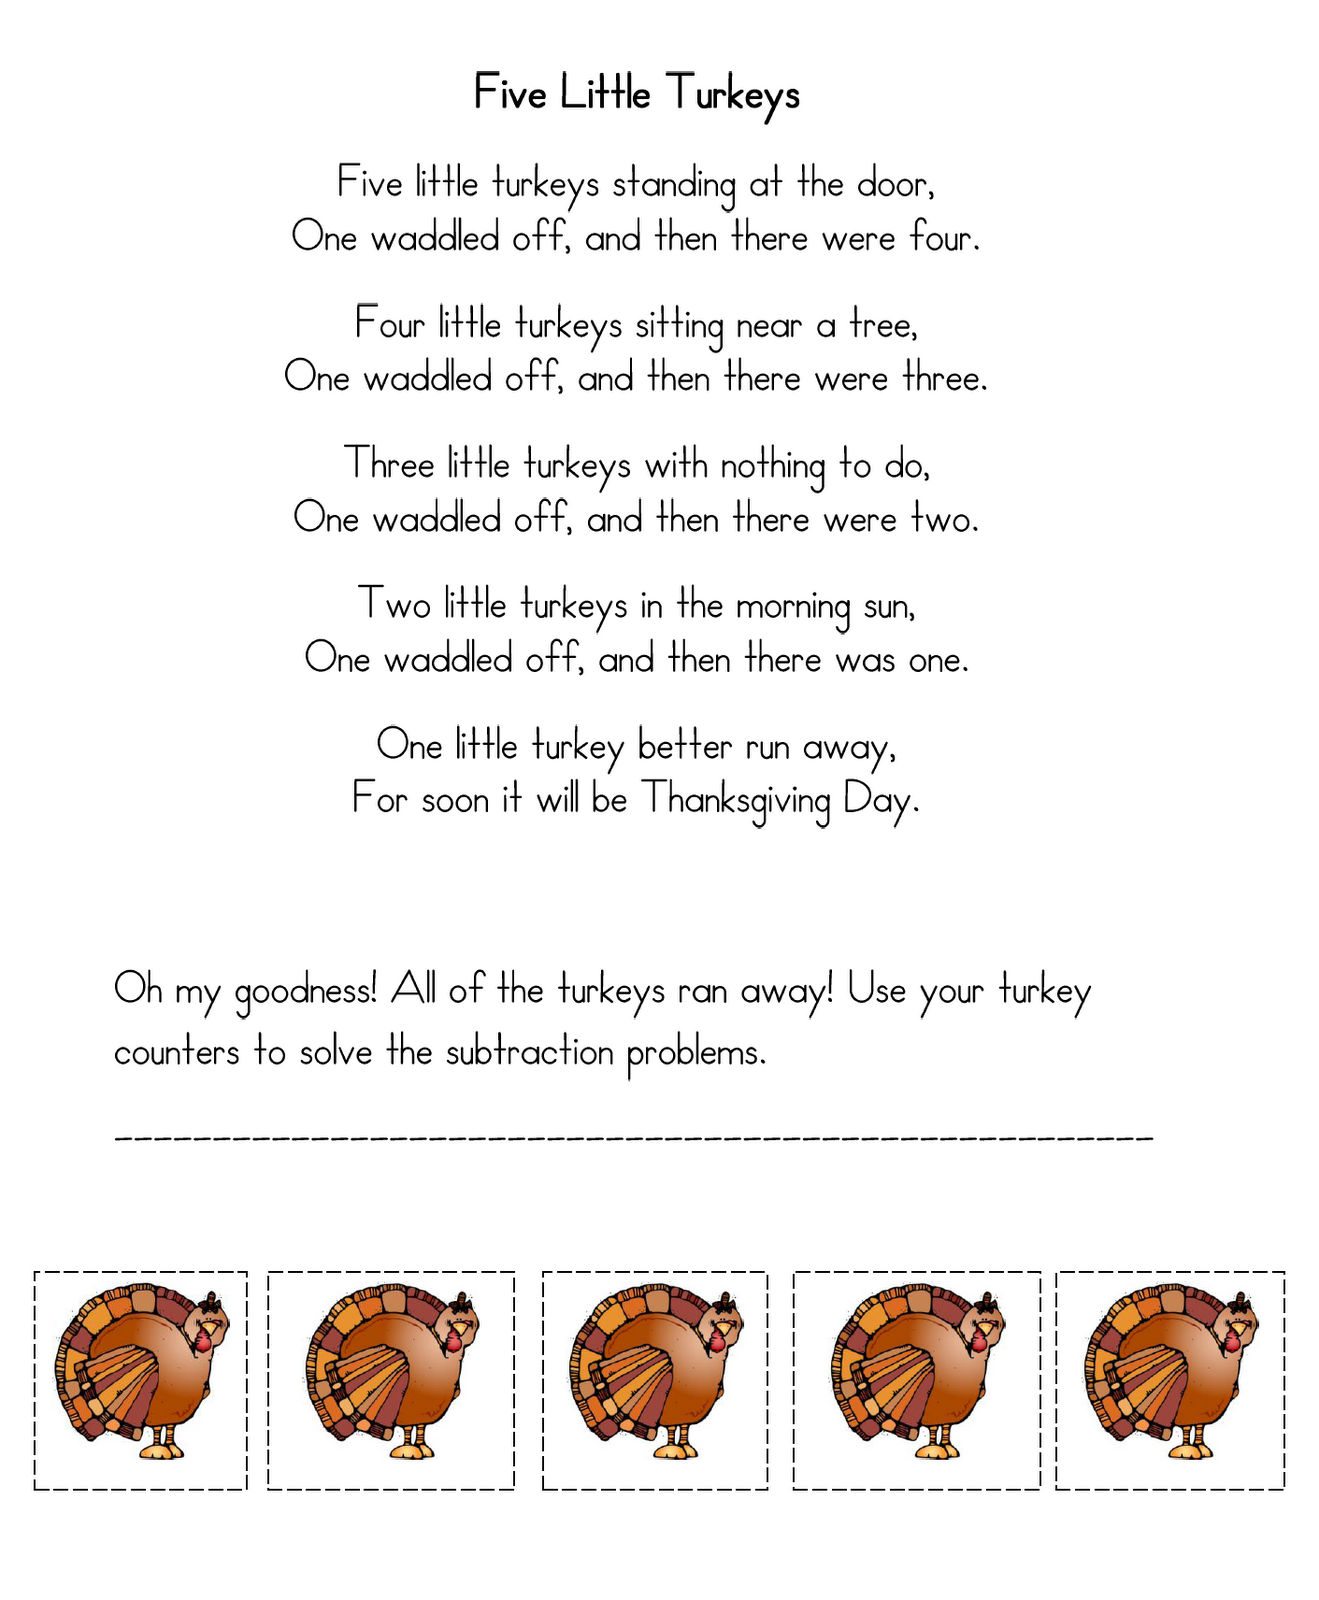 Thanksgiving Five Little Turkeys Poem